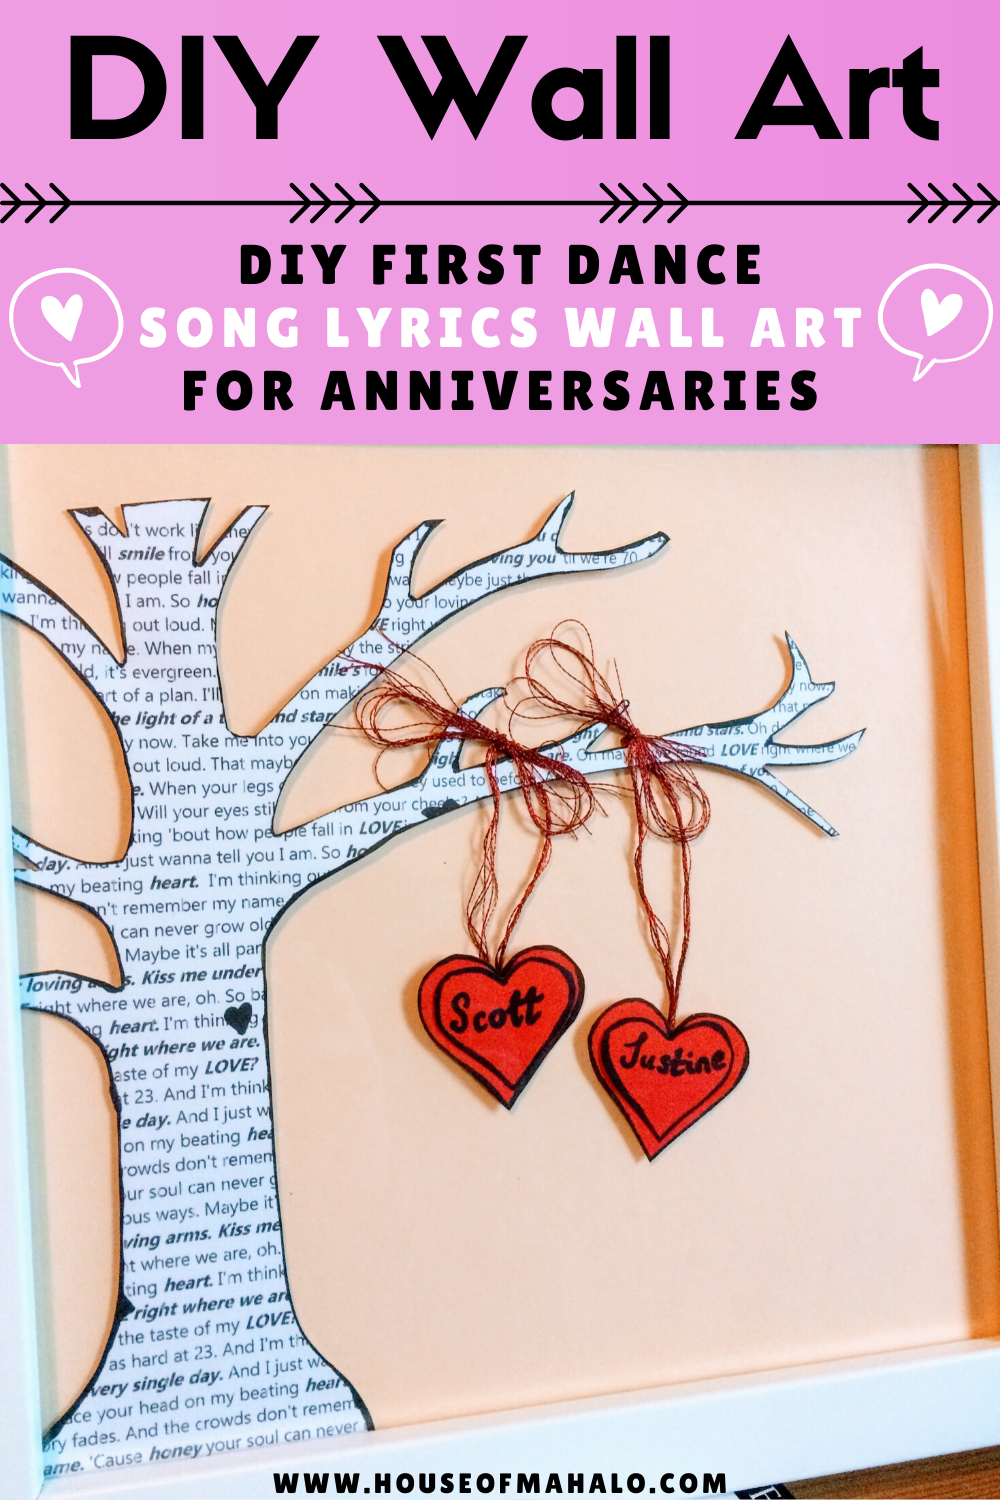 DIY First Dance Song Lyrics Wall Art